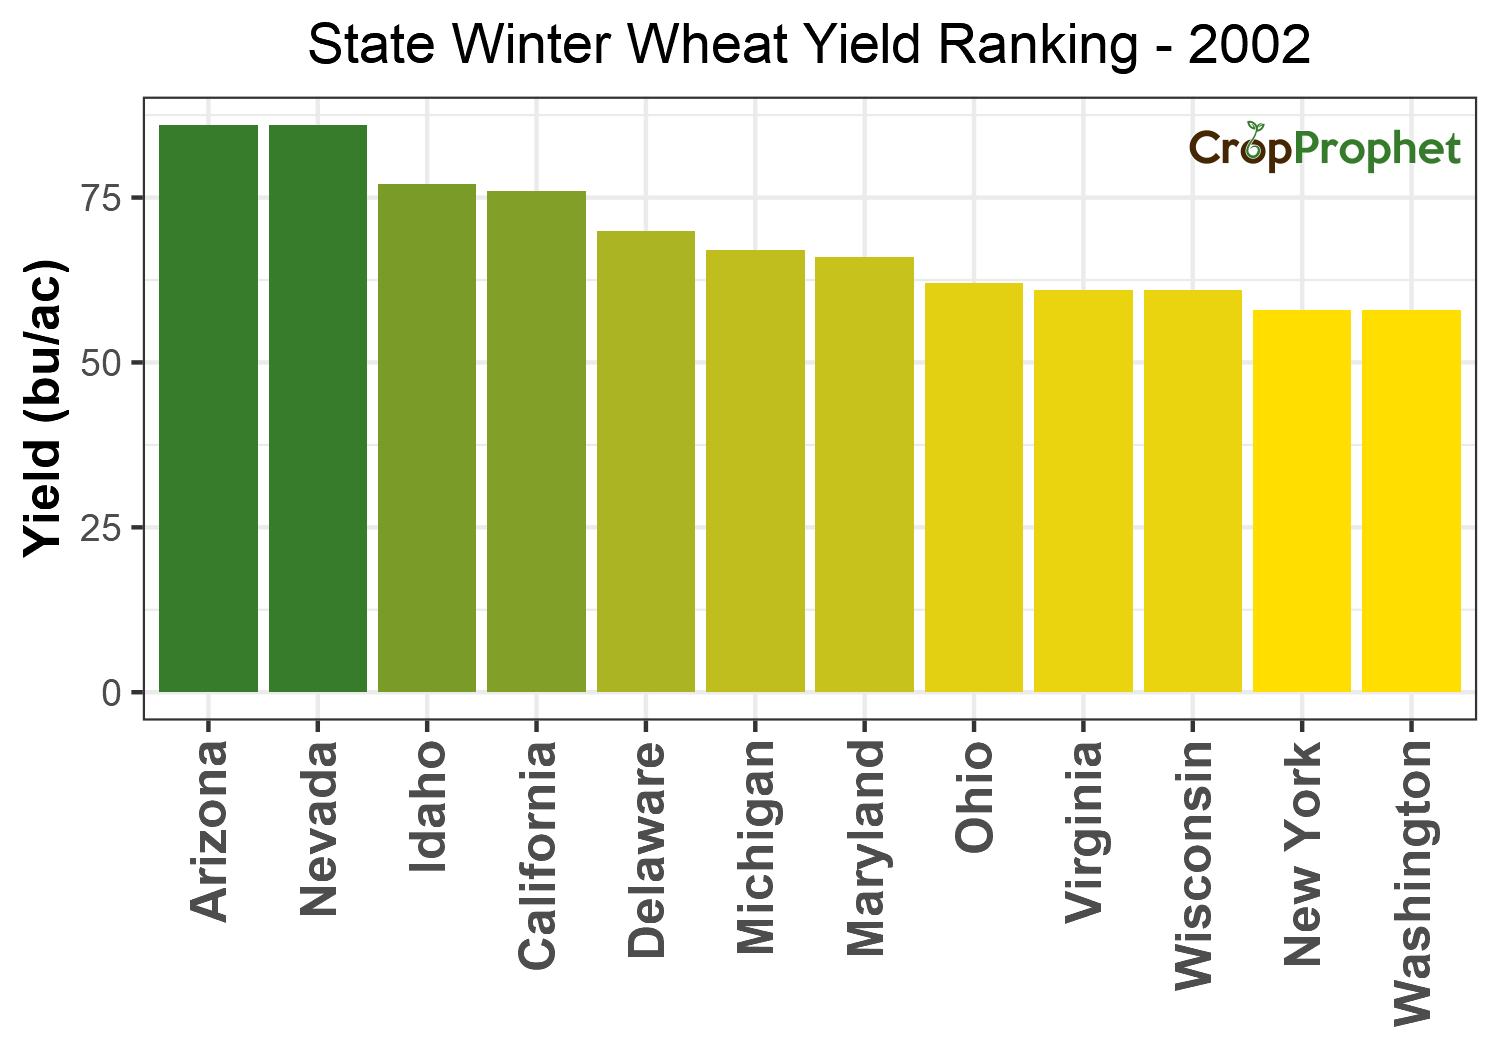 Winter wheat Production by State - 2002 Rankings